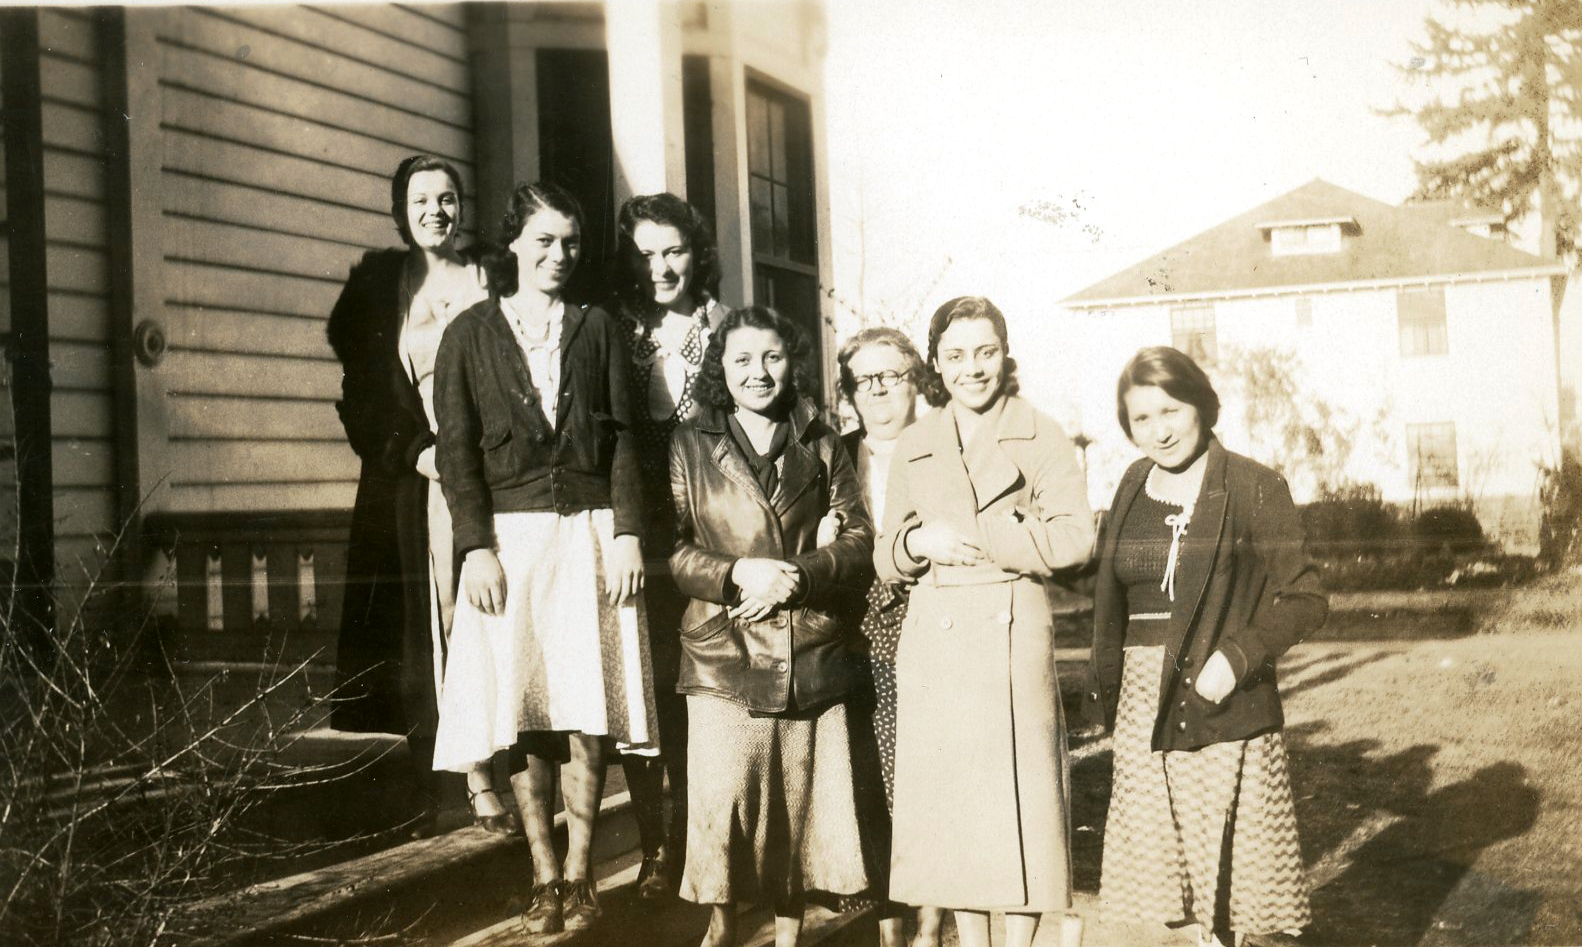 Teacher Alice Judd and Chemawa teenagers, c.1928. Courtesy Oregon Hist. Soc. Research Lib., Alice Judd Coll. 492.